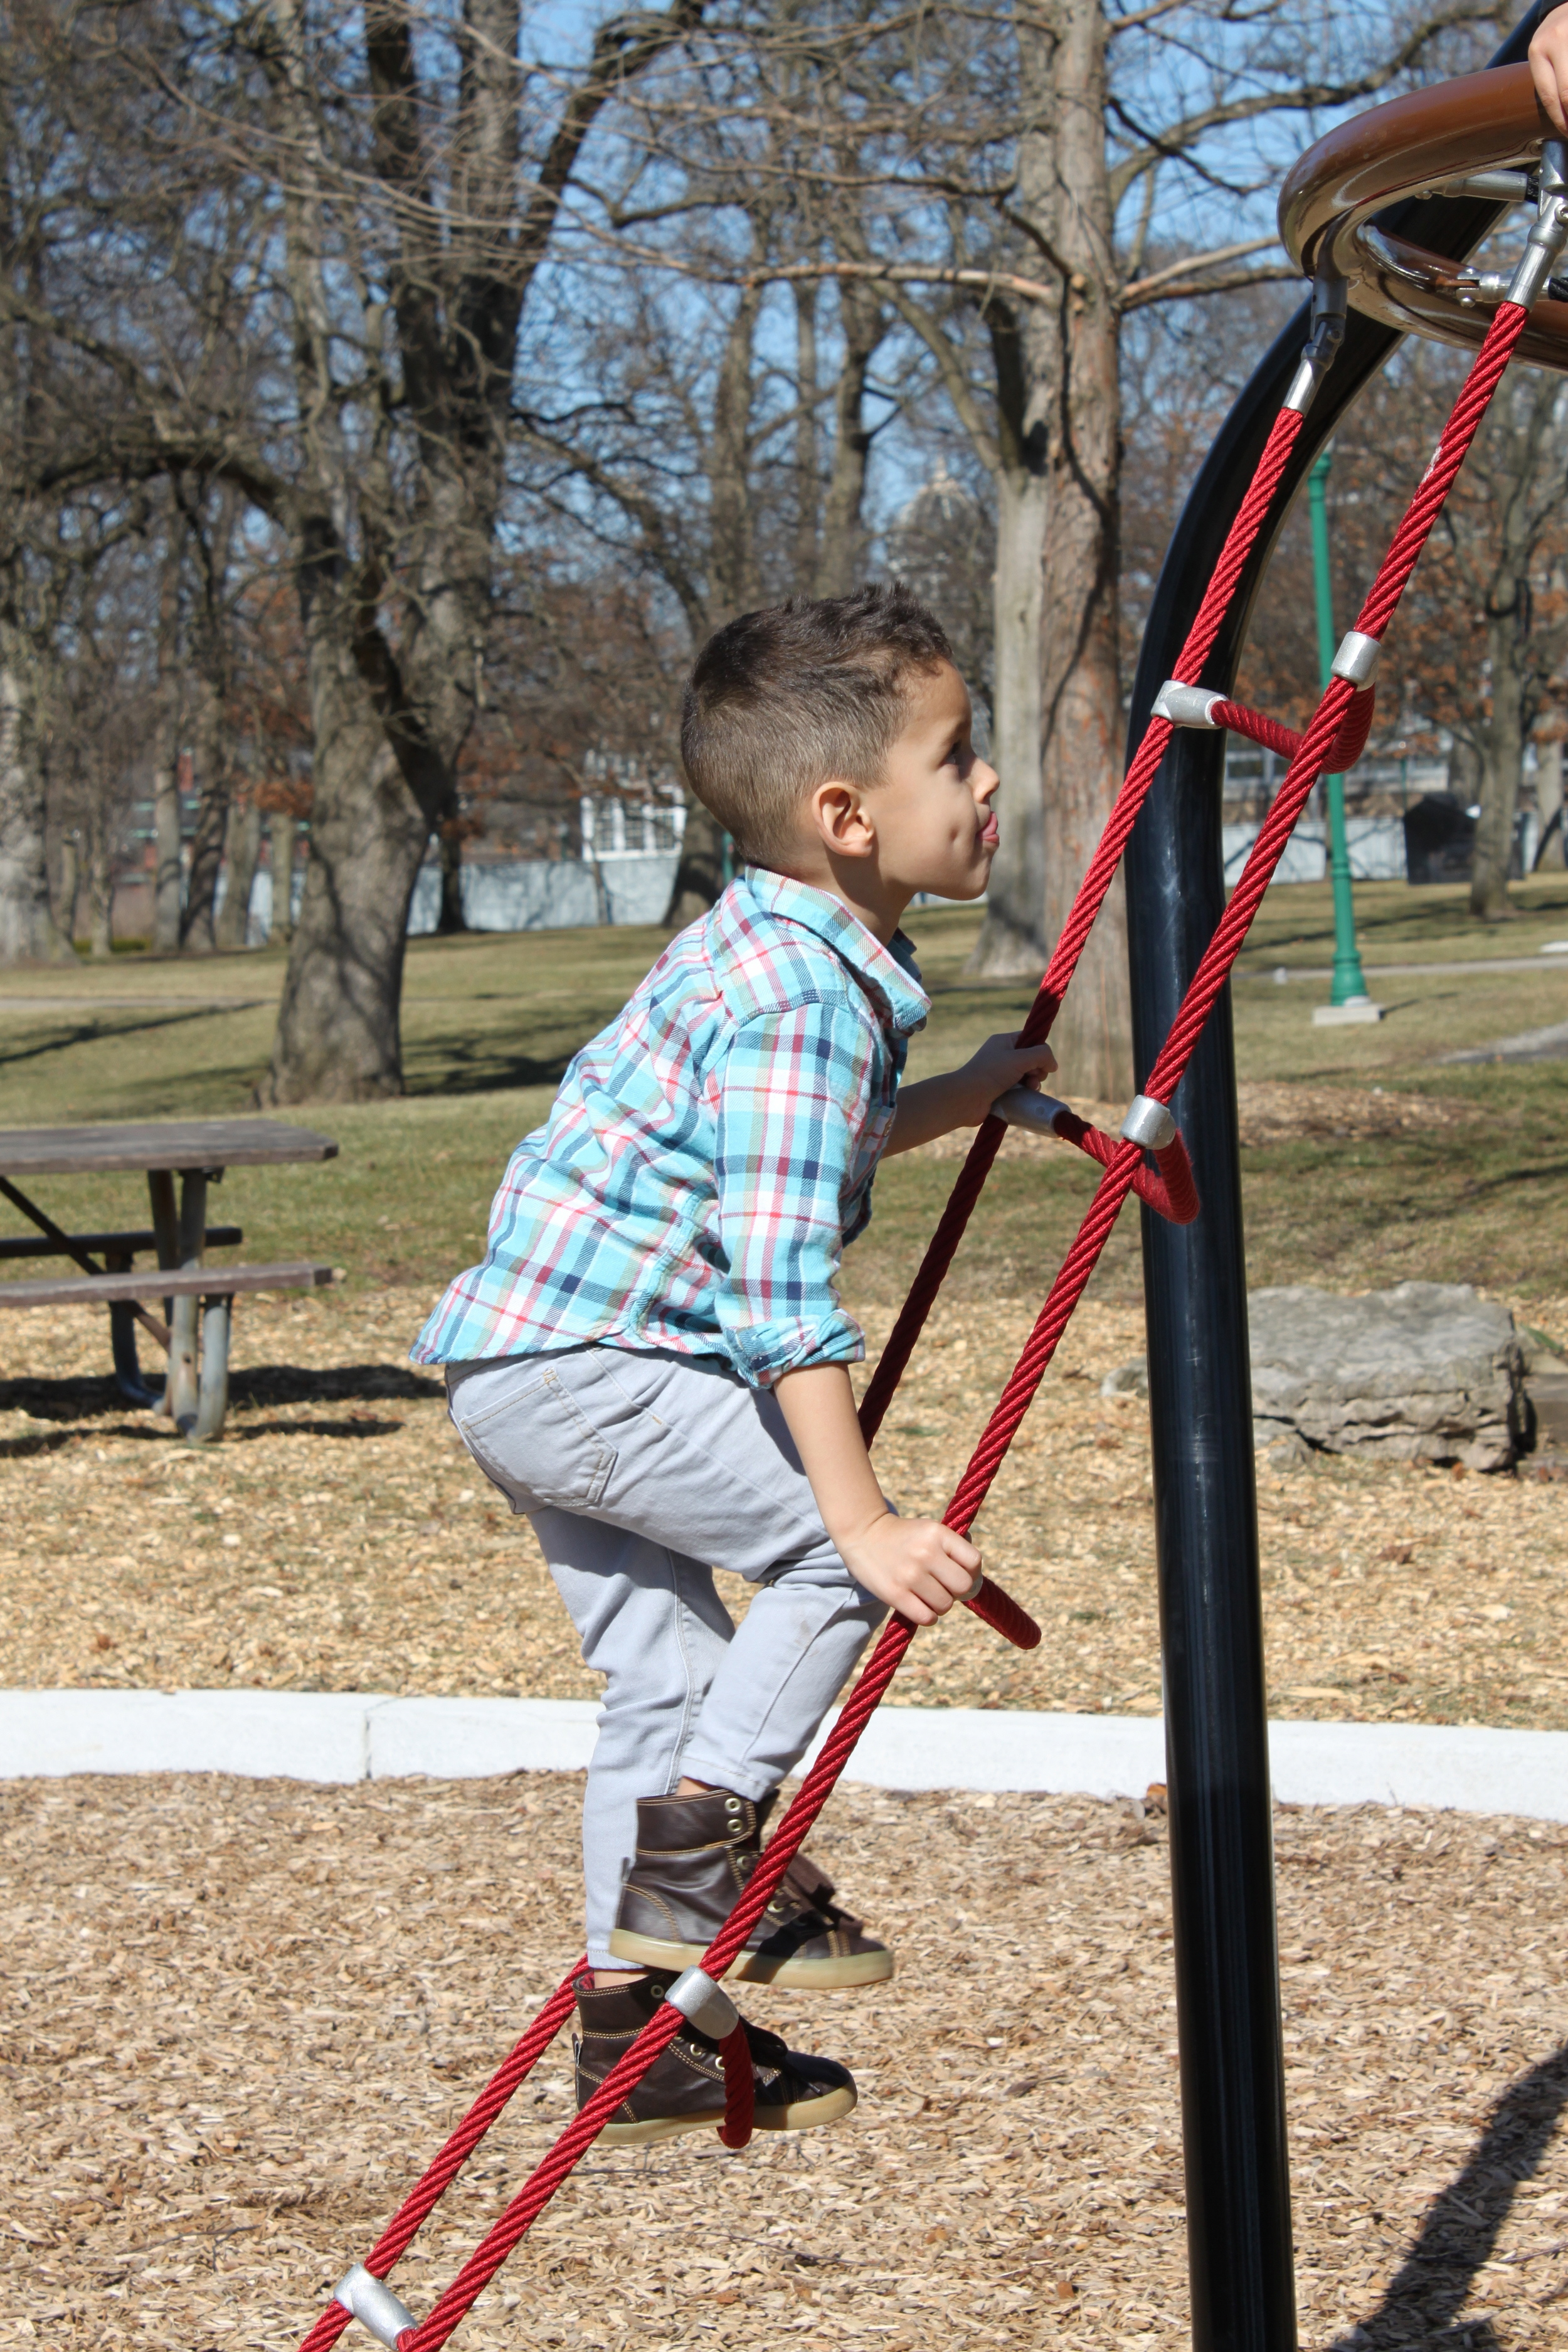 Playing at the playground in Franklin Park